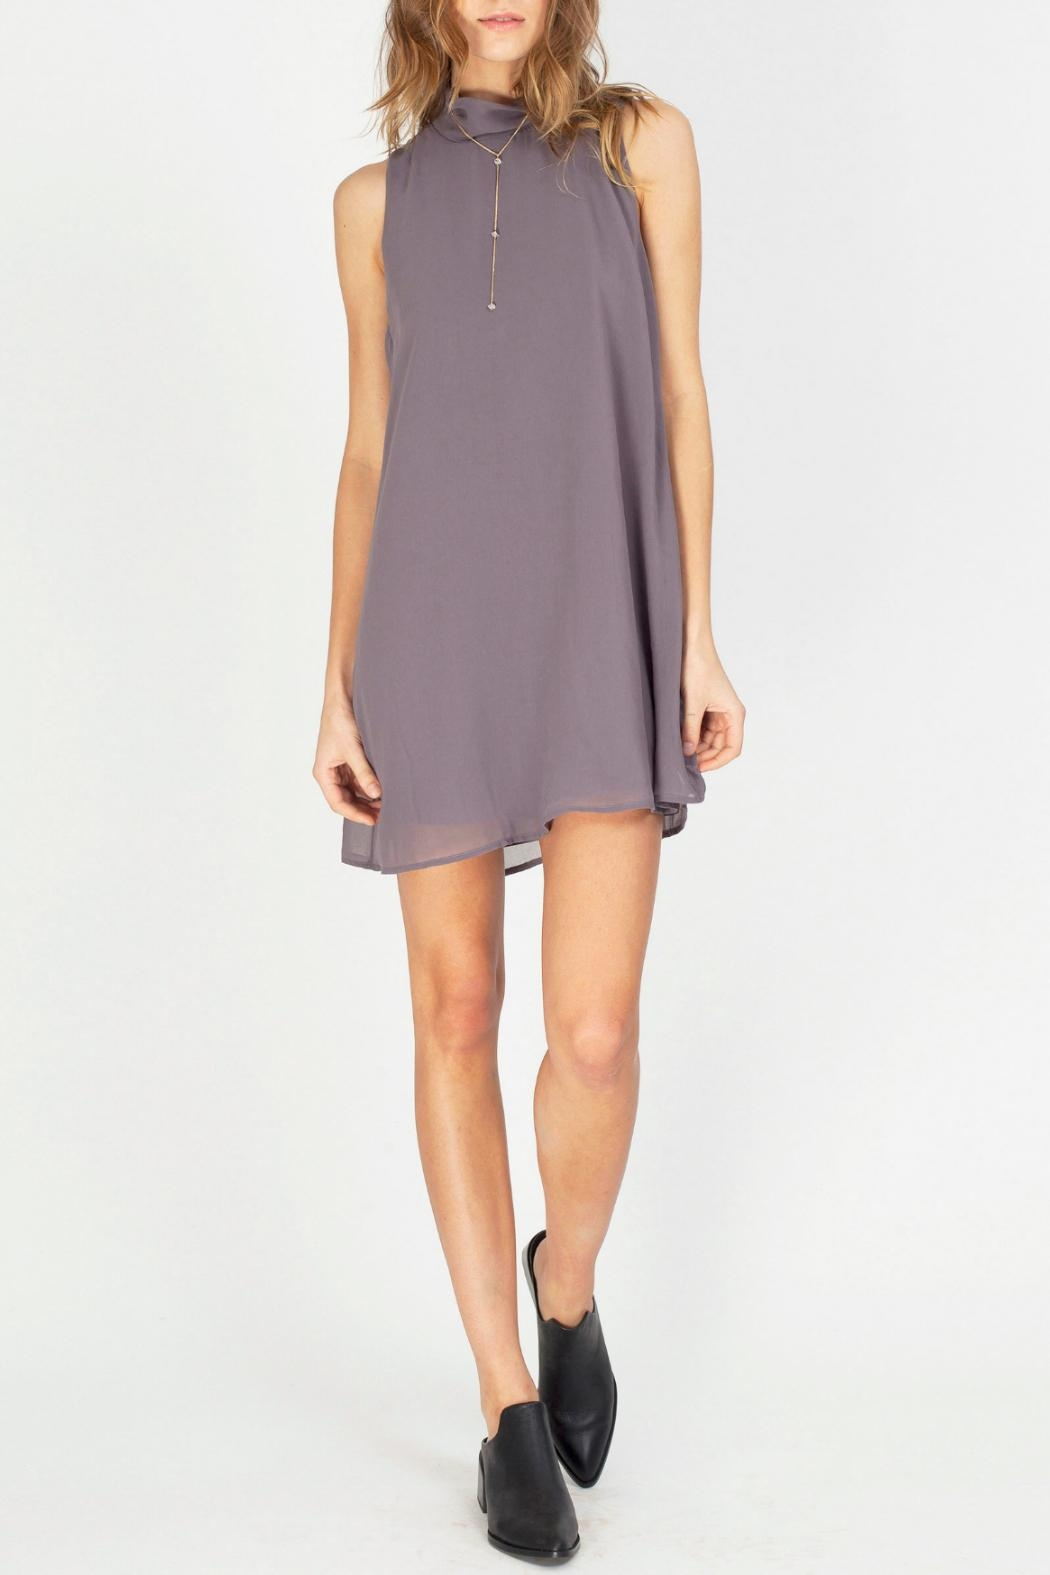 Gentle Fawn Paige Dress - Main Image